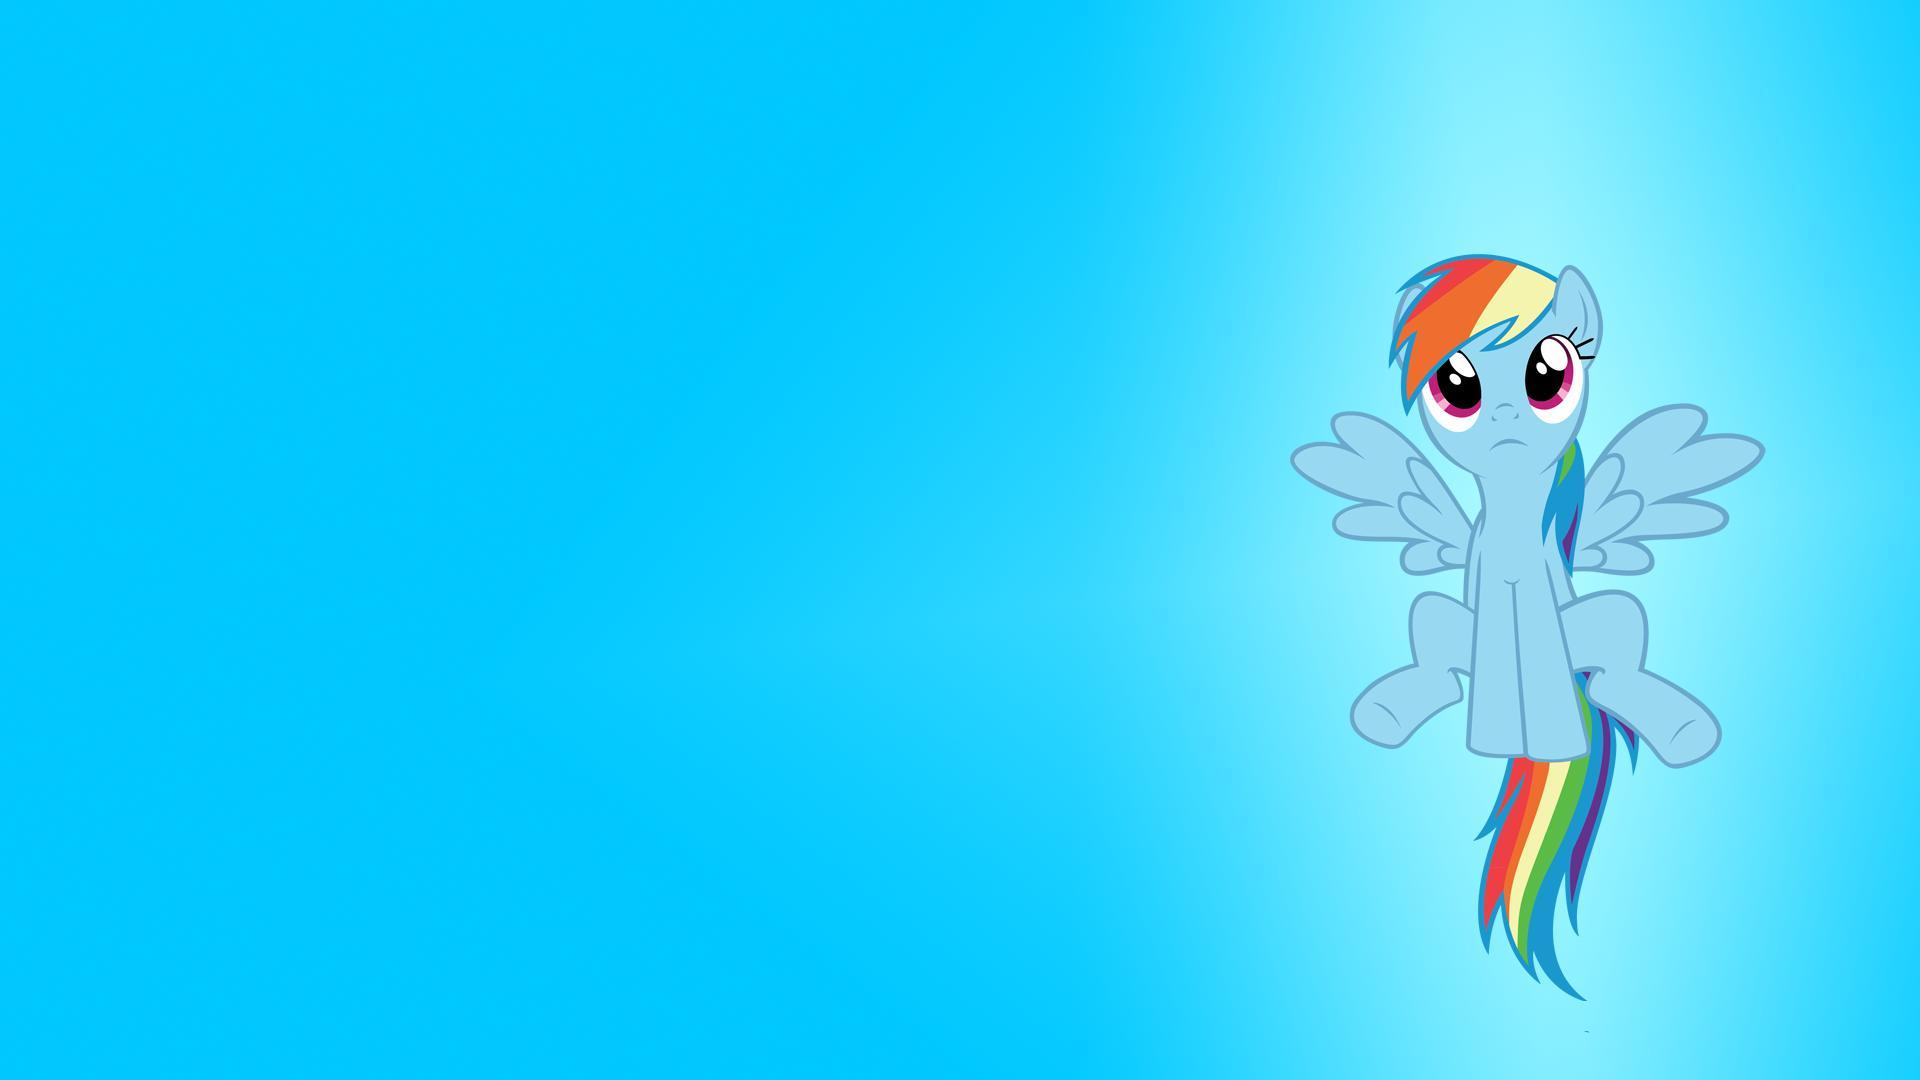 19137 download wallpaper Cartoon, Background, Horses screensavers and pictures for free